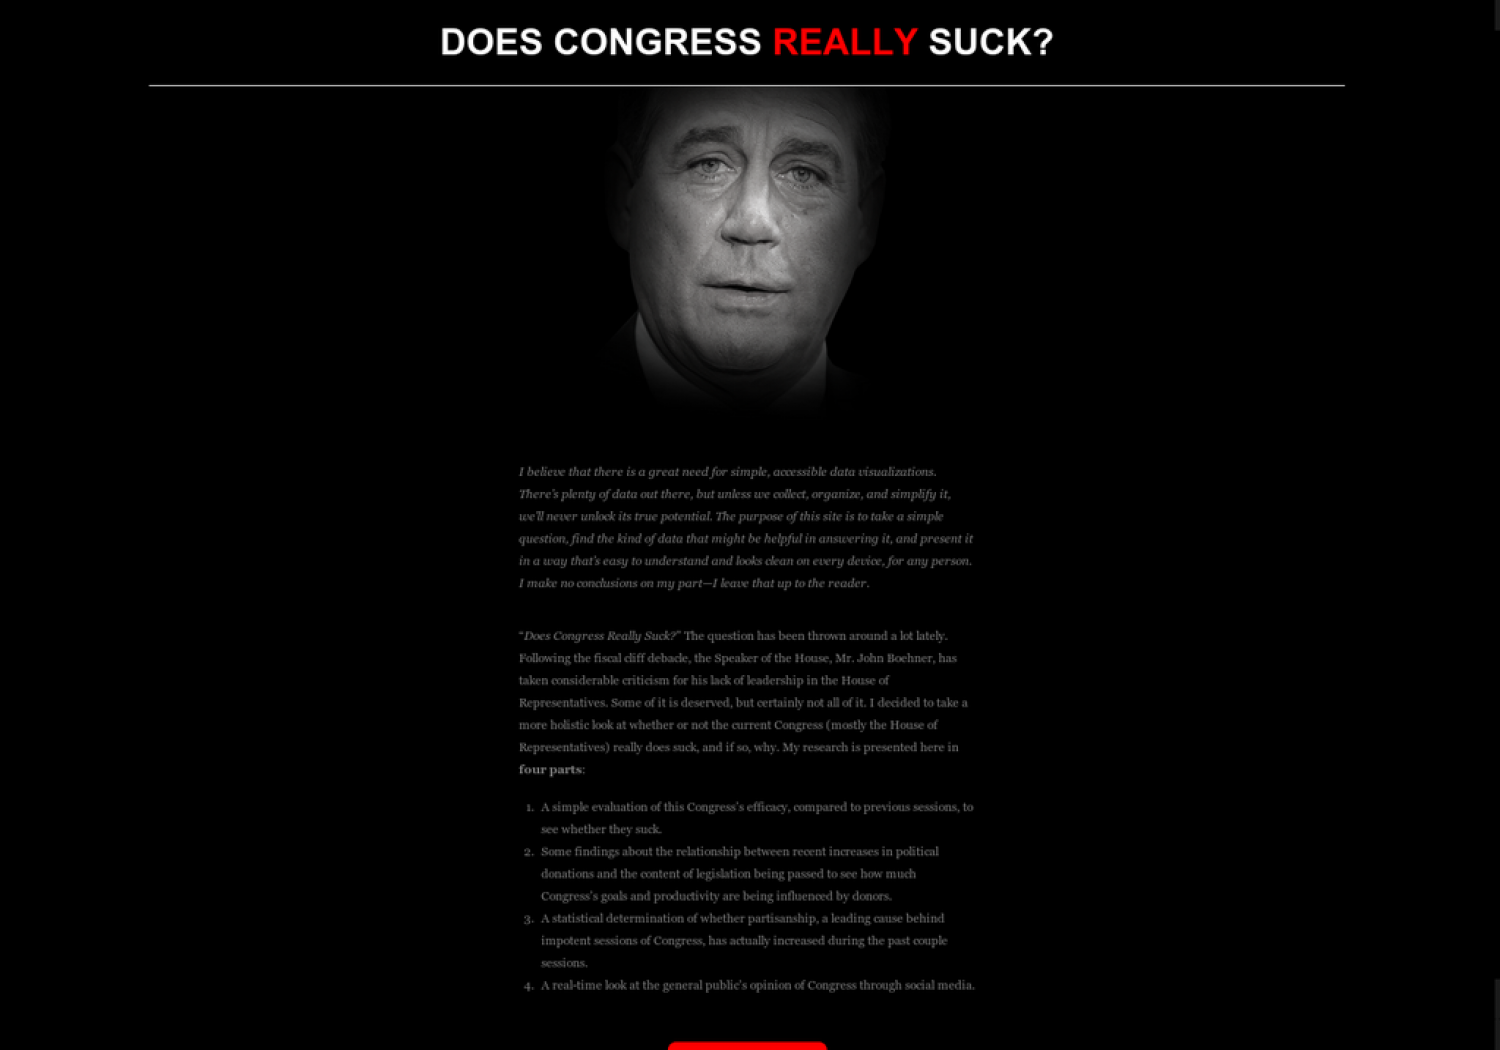 Does Congress Really Suck Infographic